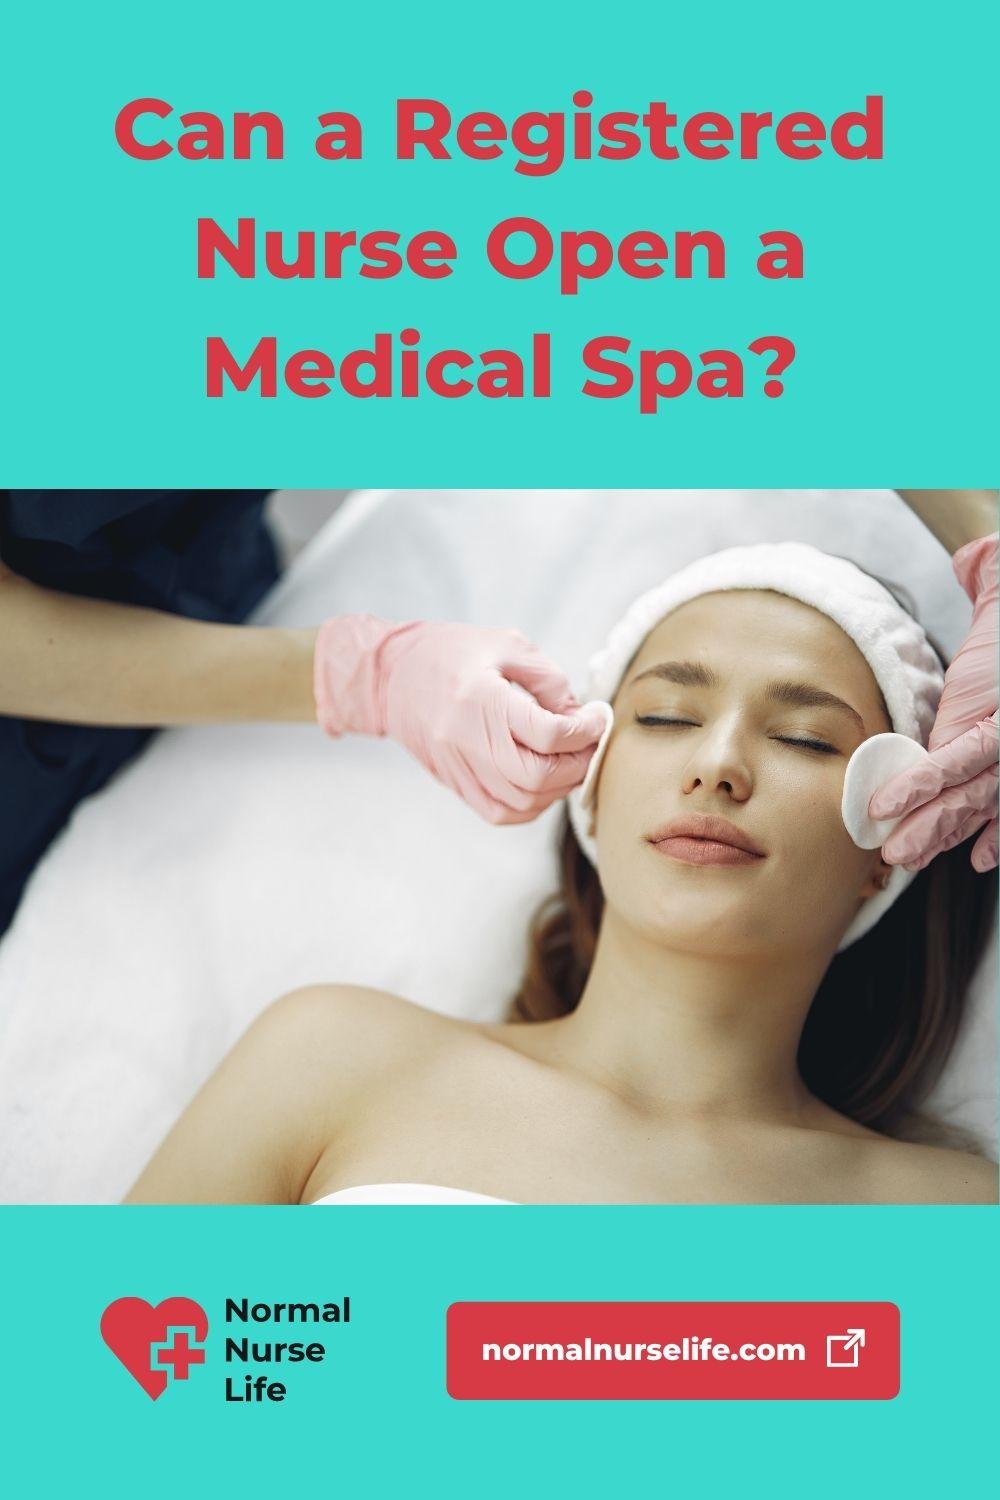 Can a registered nurse open a medical spa or not